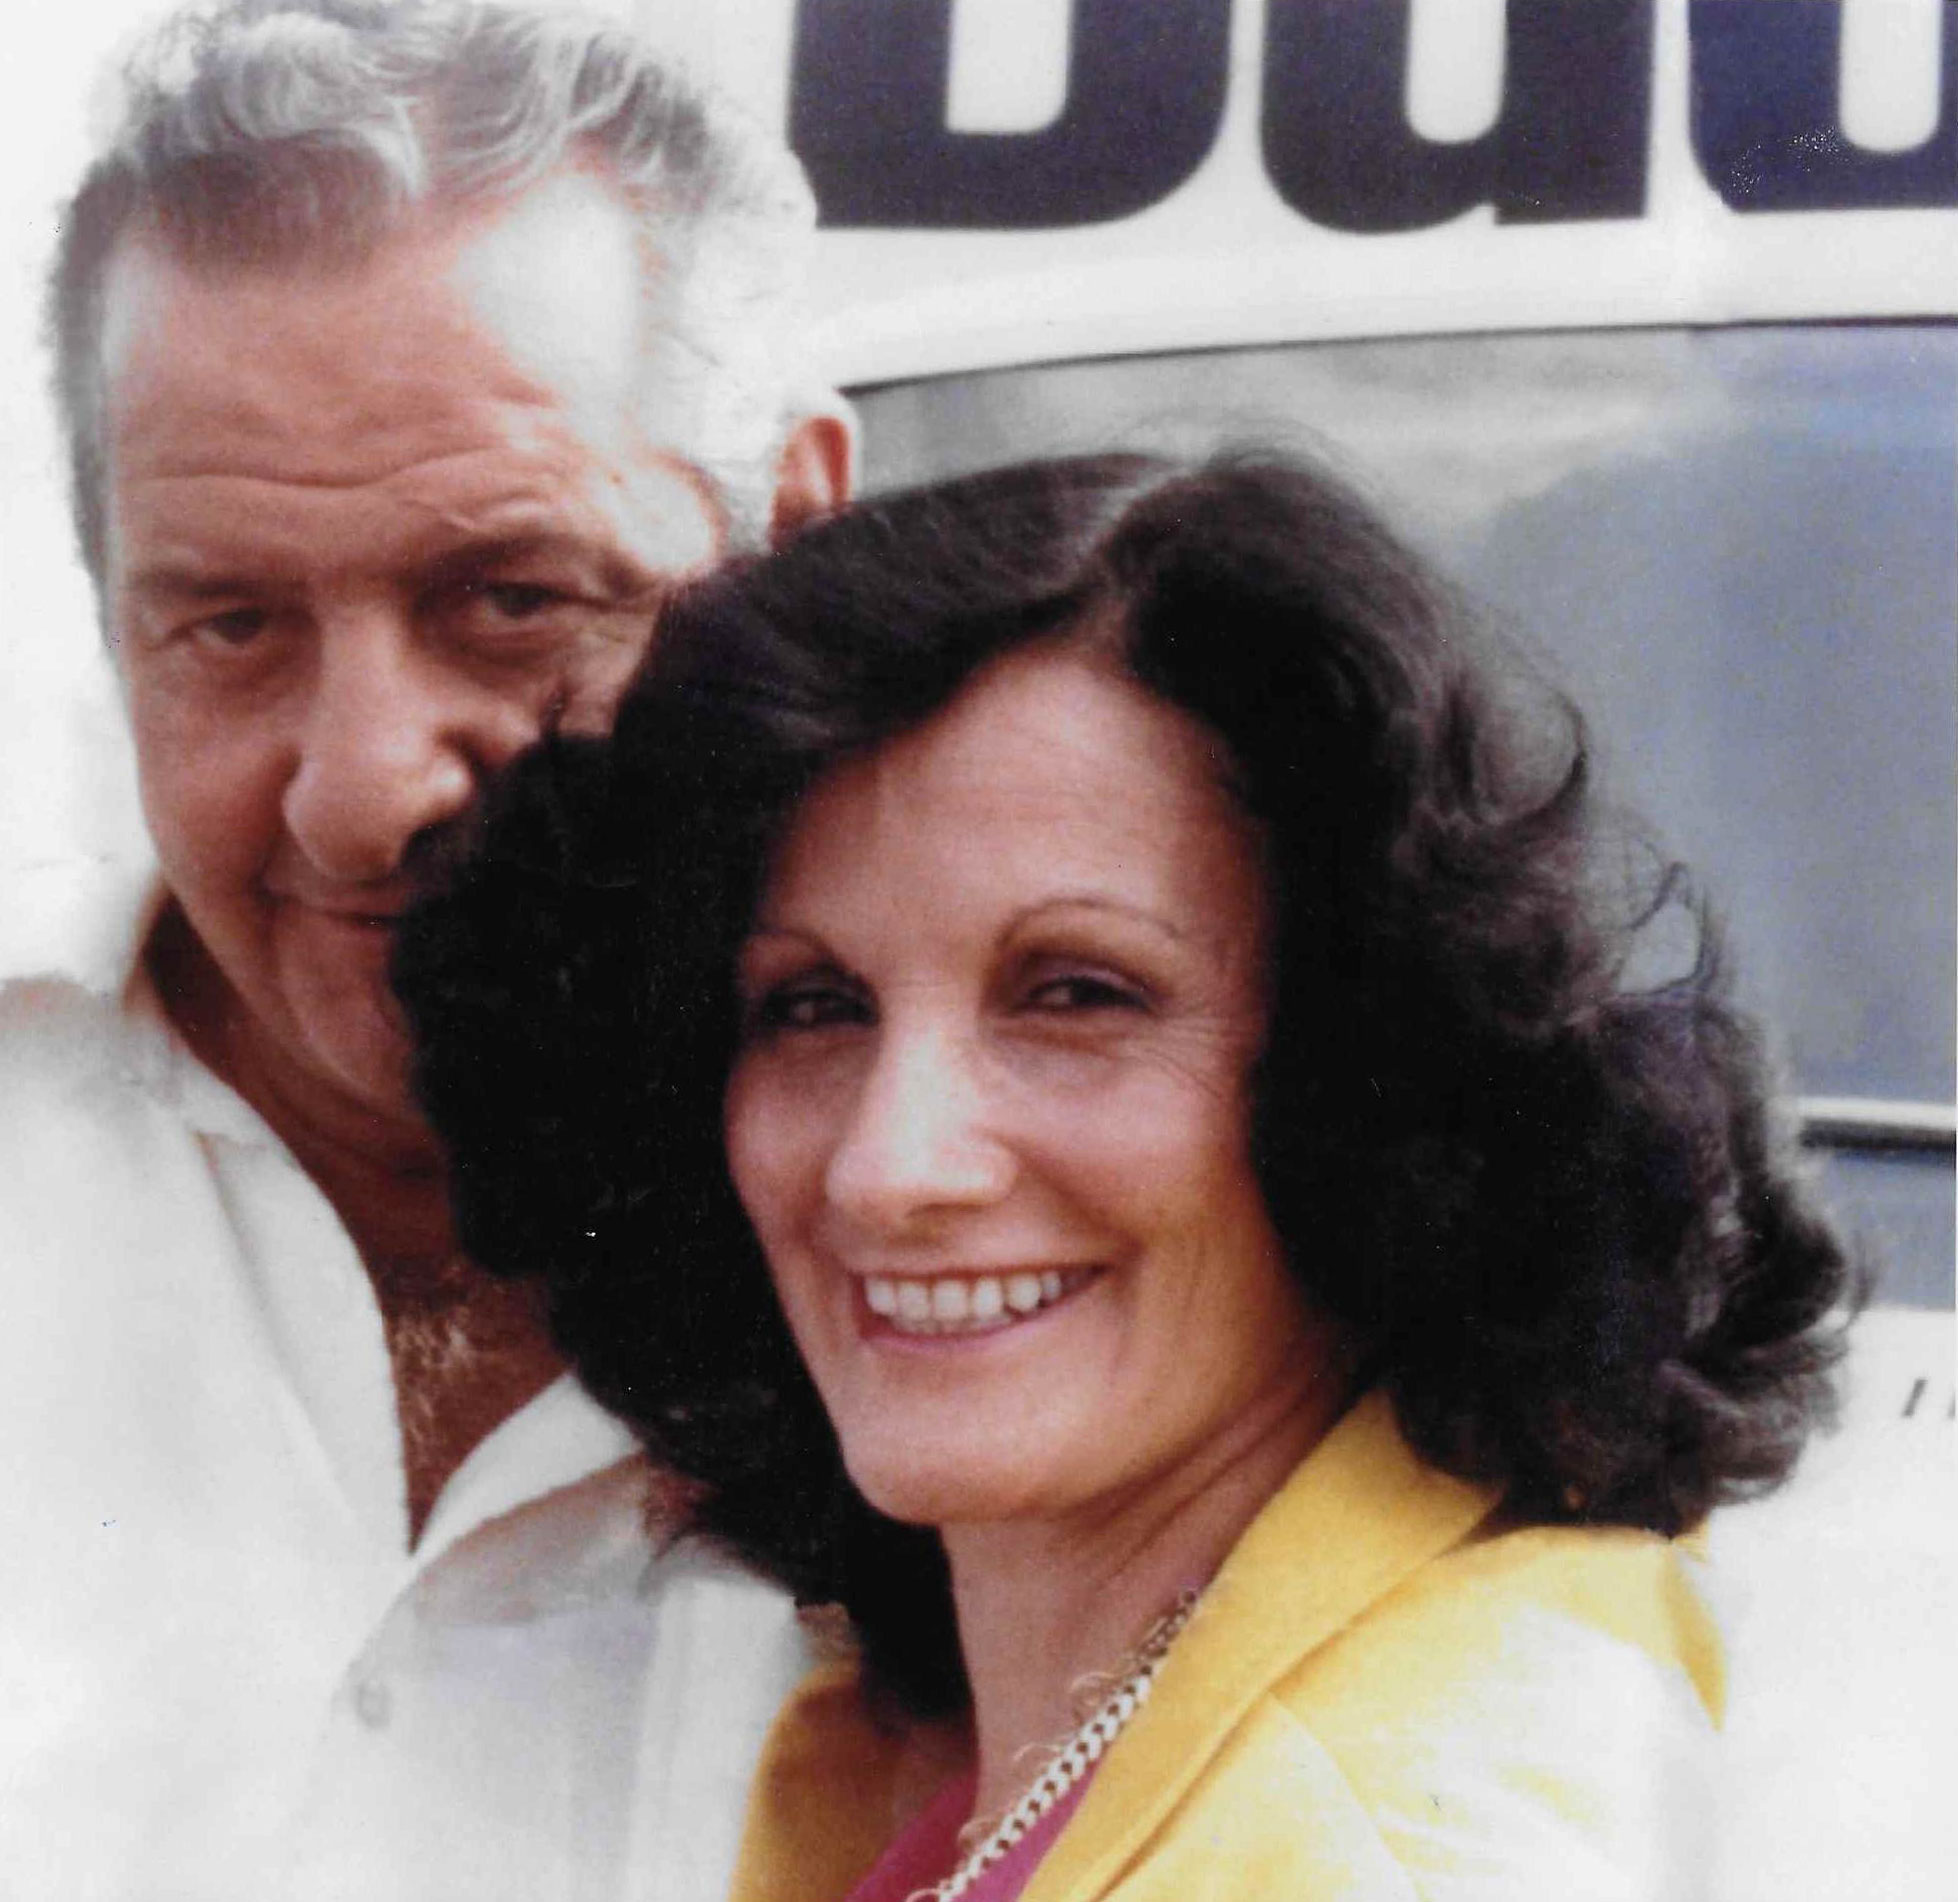 Al and Daisy Monzo in 1975